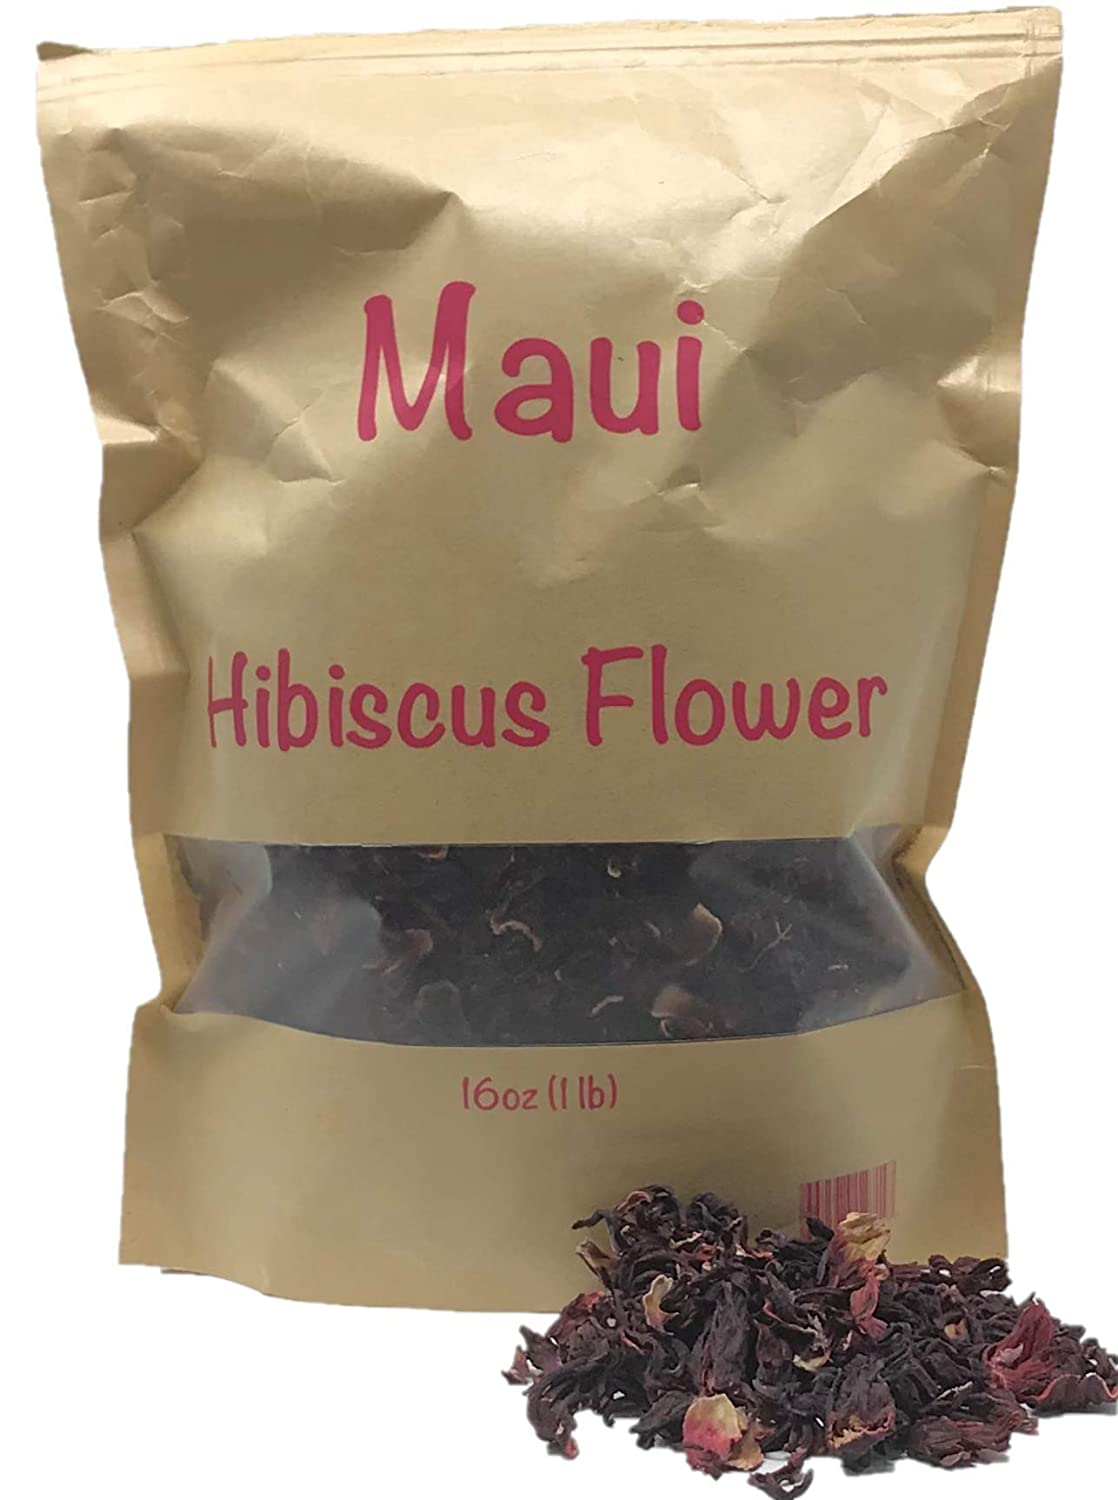 Maui Hibiscus flowers. 1 Pound 16 oz 100% Natural Dried Hibiscus Flower Cut & Sifted, 1 Pound Bulk Bag. 100% raw for perfect Hibiscus Tea or a cold drink. ( Whole Flower, no small pieces)